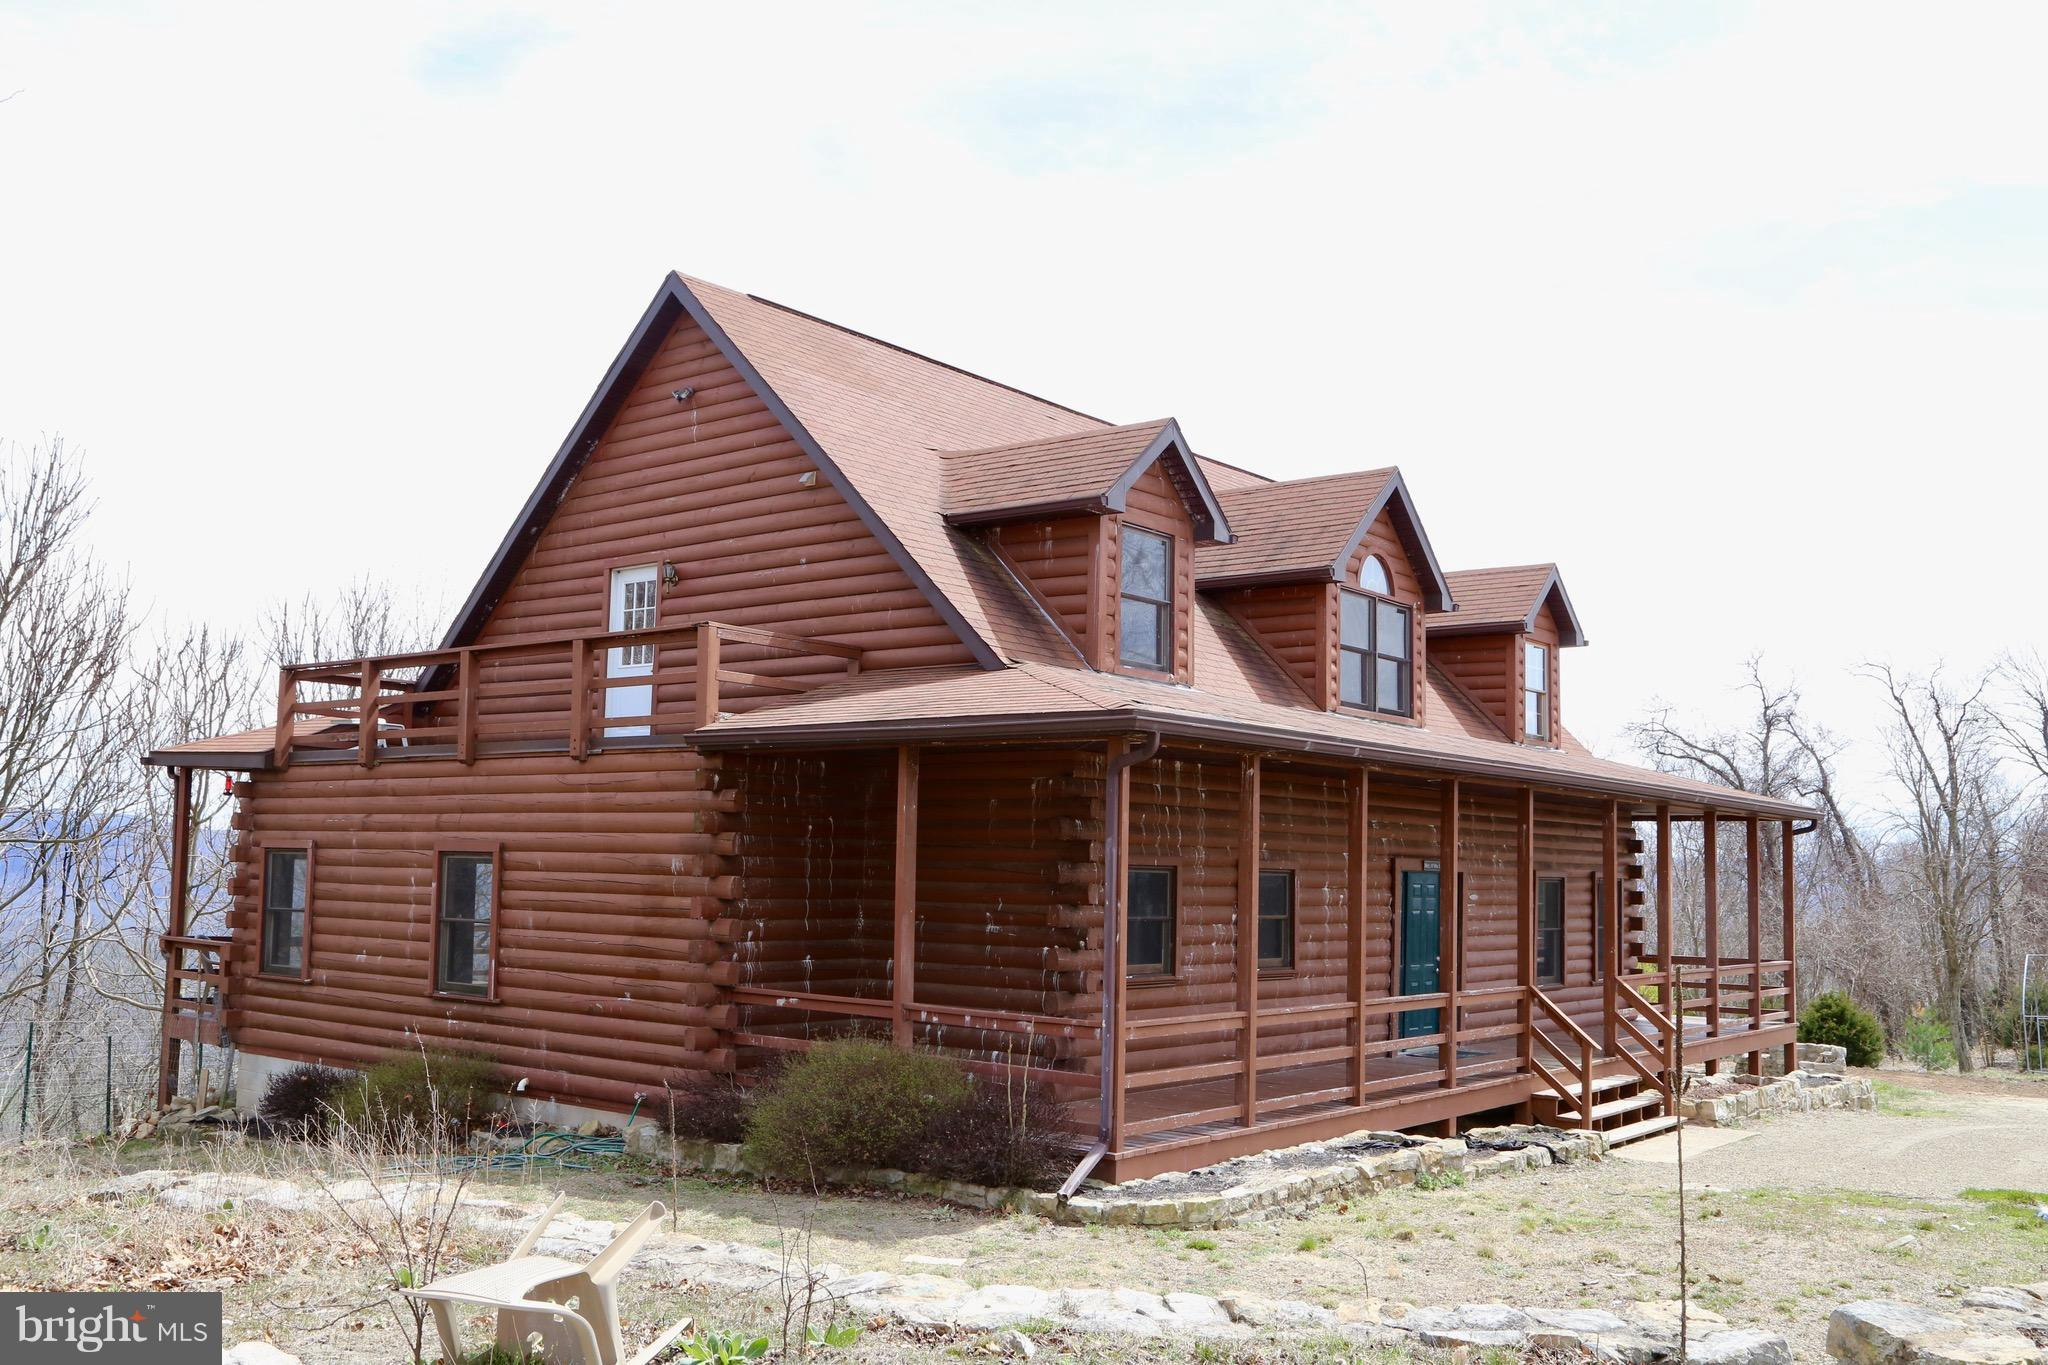 MOTIVATED SELLER.  TAKING BEST OFFER. Majestic Mountain View 5BD/3.BA Log Home w/ mostly mostly wooded 20 acres. Great wildlife in the area.  Amenities include: vaulted ceilings, wood walls and ceilings, upper level and wraparound decks, fireplace in master bdrm, jacuzzi tub, separate 2-bdrm guest quarters with Jack-N-Jill bath, workshop basement. Only 2 hrs from DC, and 30 mins from Winchester. OWNER FINANCING/RENT TO OWN AVAILABLE.